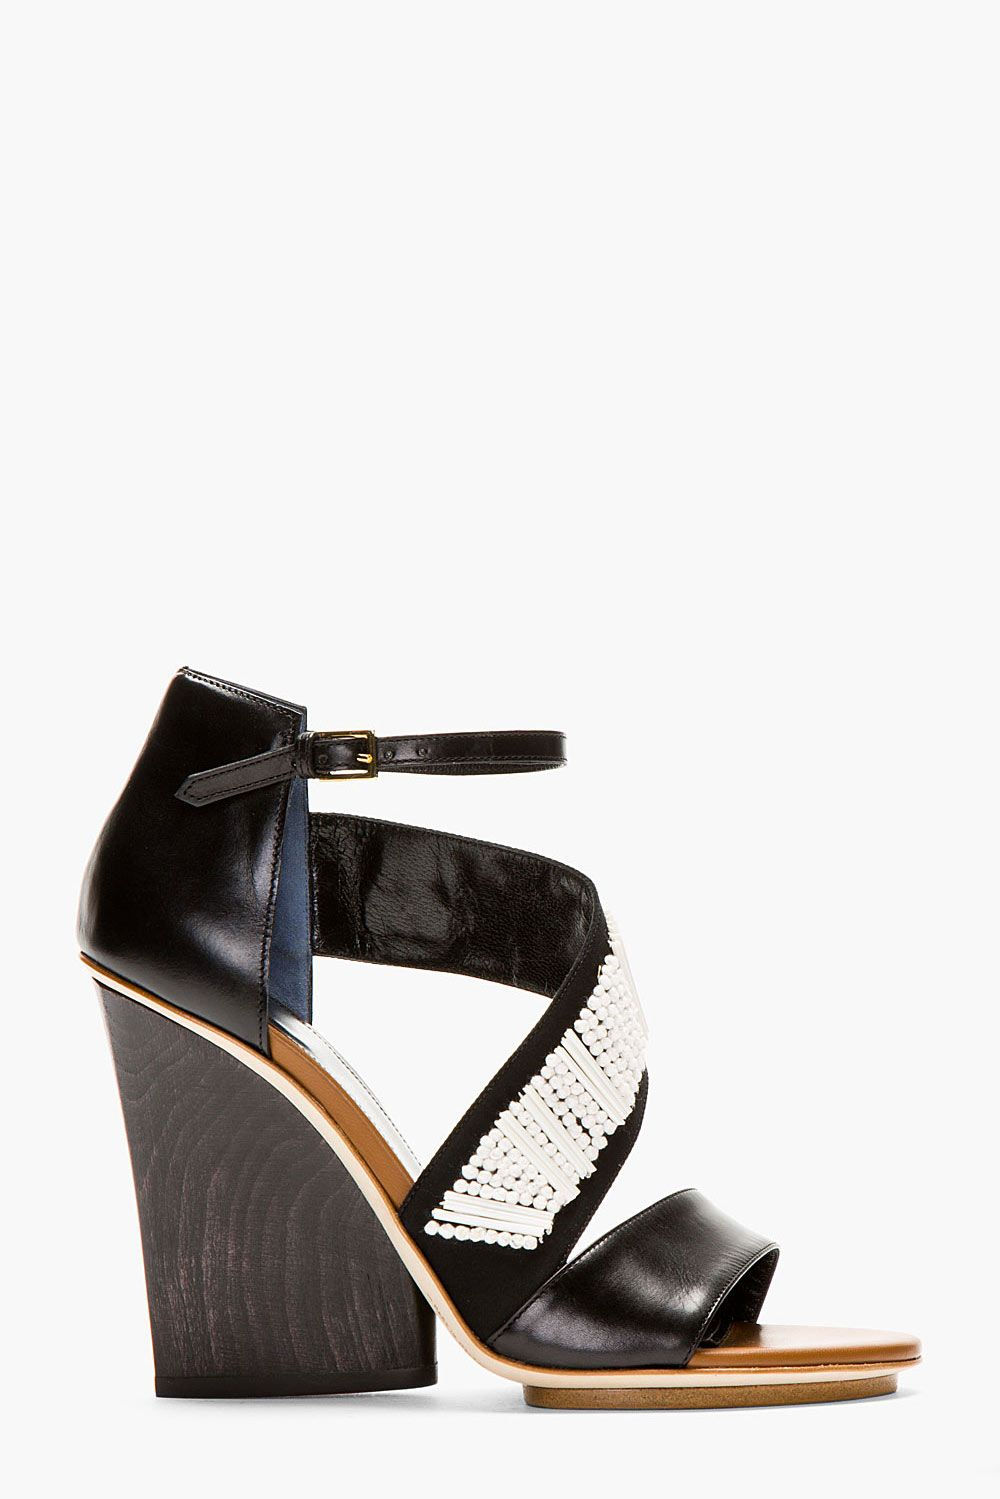 Shoe Gaze Maiyet S Black Embroidered Wedges The Cut